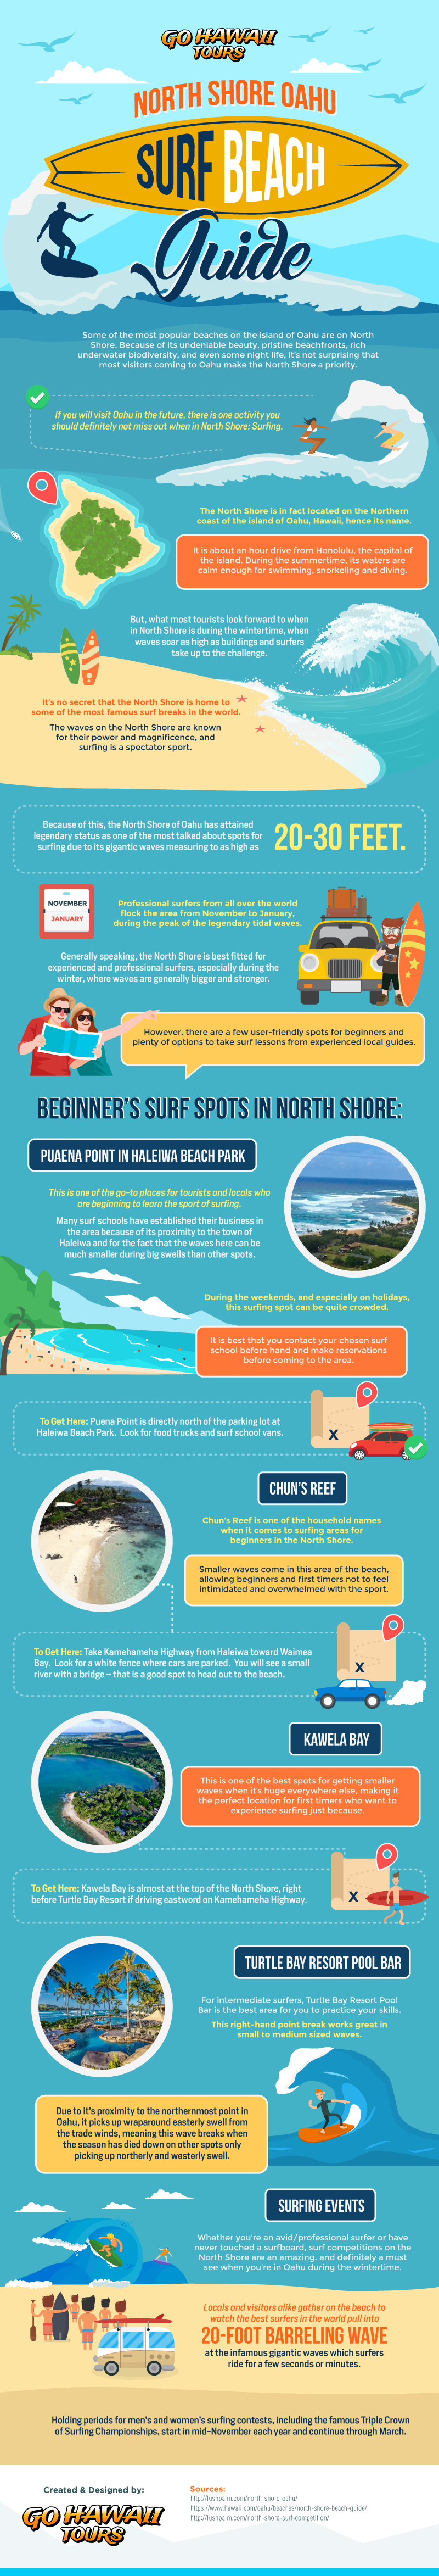 North Shore Oahu Surf Beach Guide - Infographic